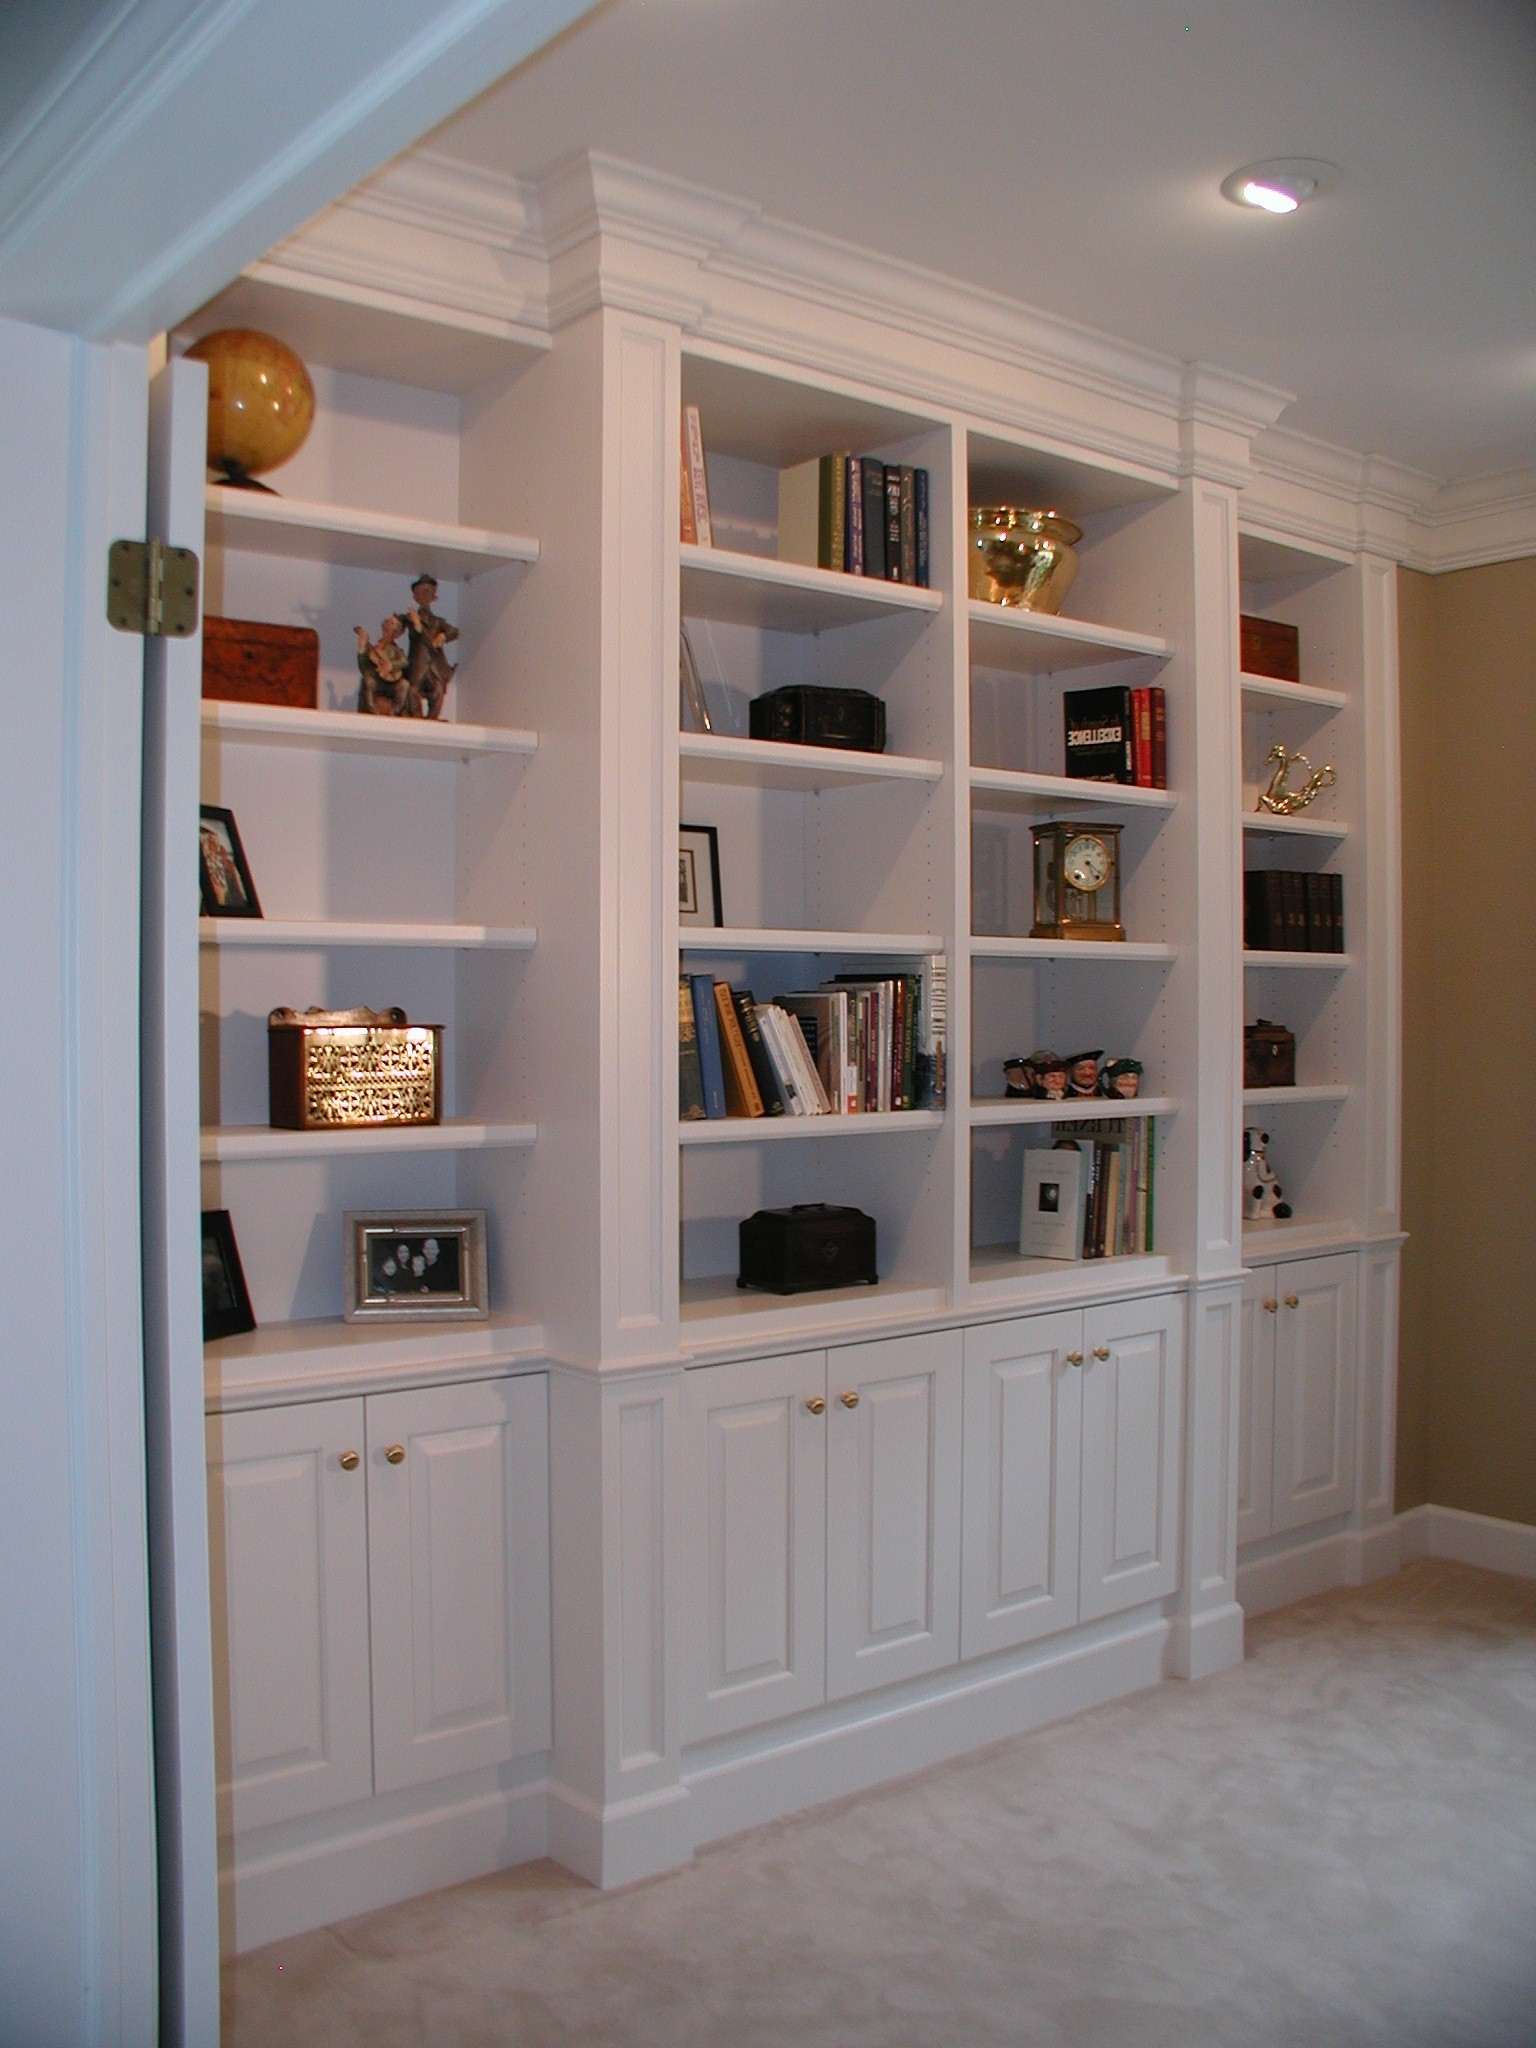 Recent High Quality Bookcases Intended For Bookcases Ideas ~ Munro Inn (View 10 of 15)